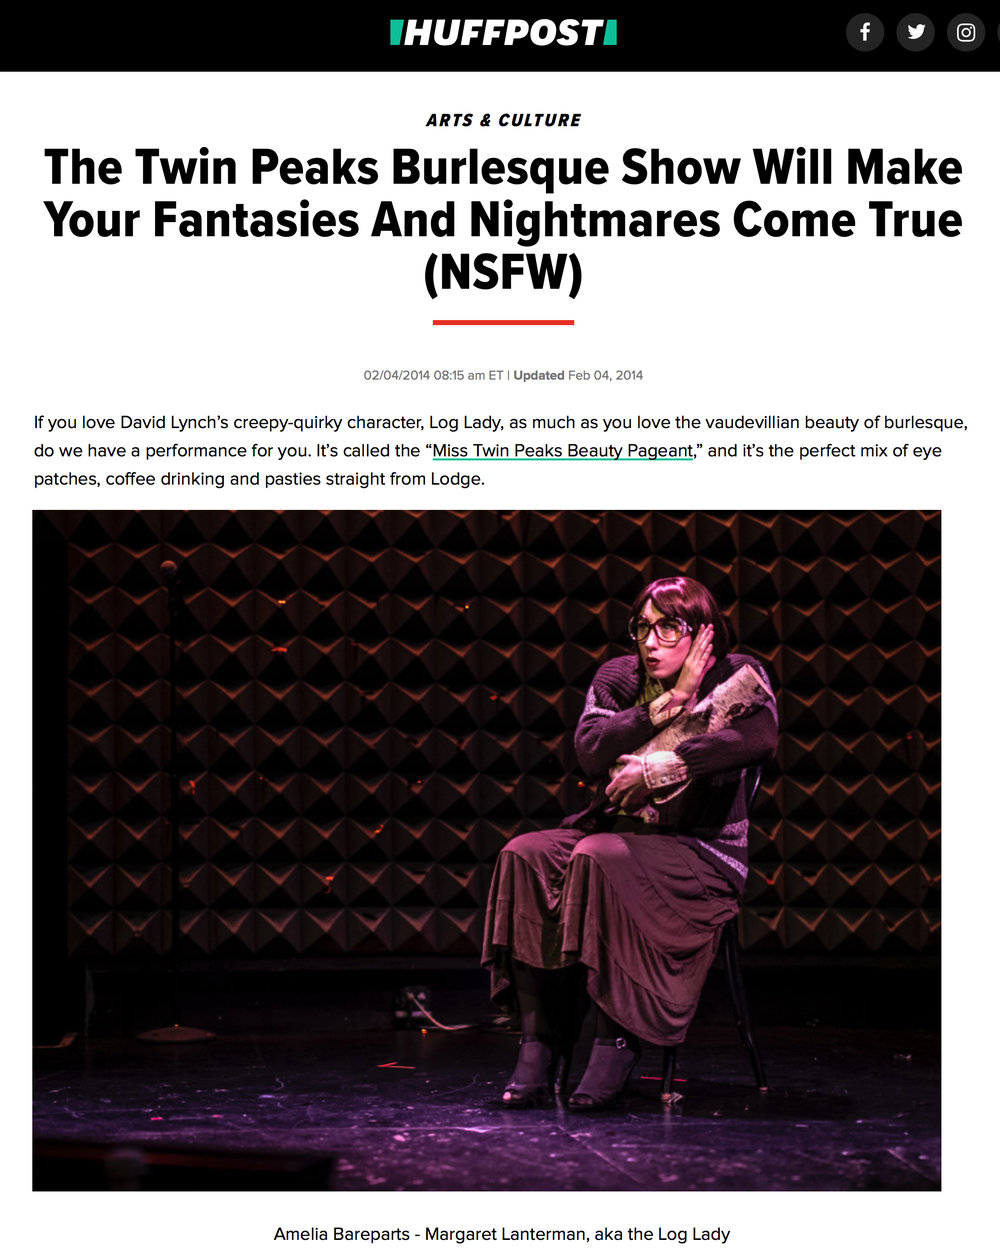 """The Twin Peaks Burlesque Show Will Make Your Fantasies And Nightmares Come True"" - Huffington Post"